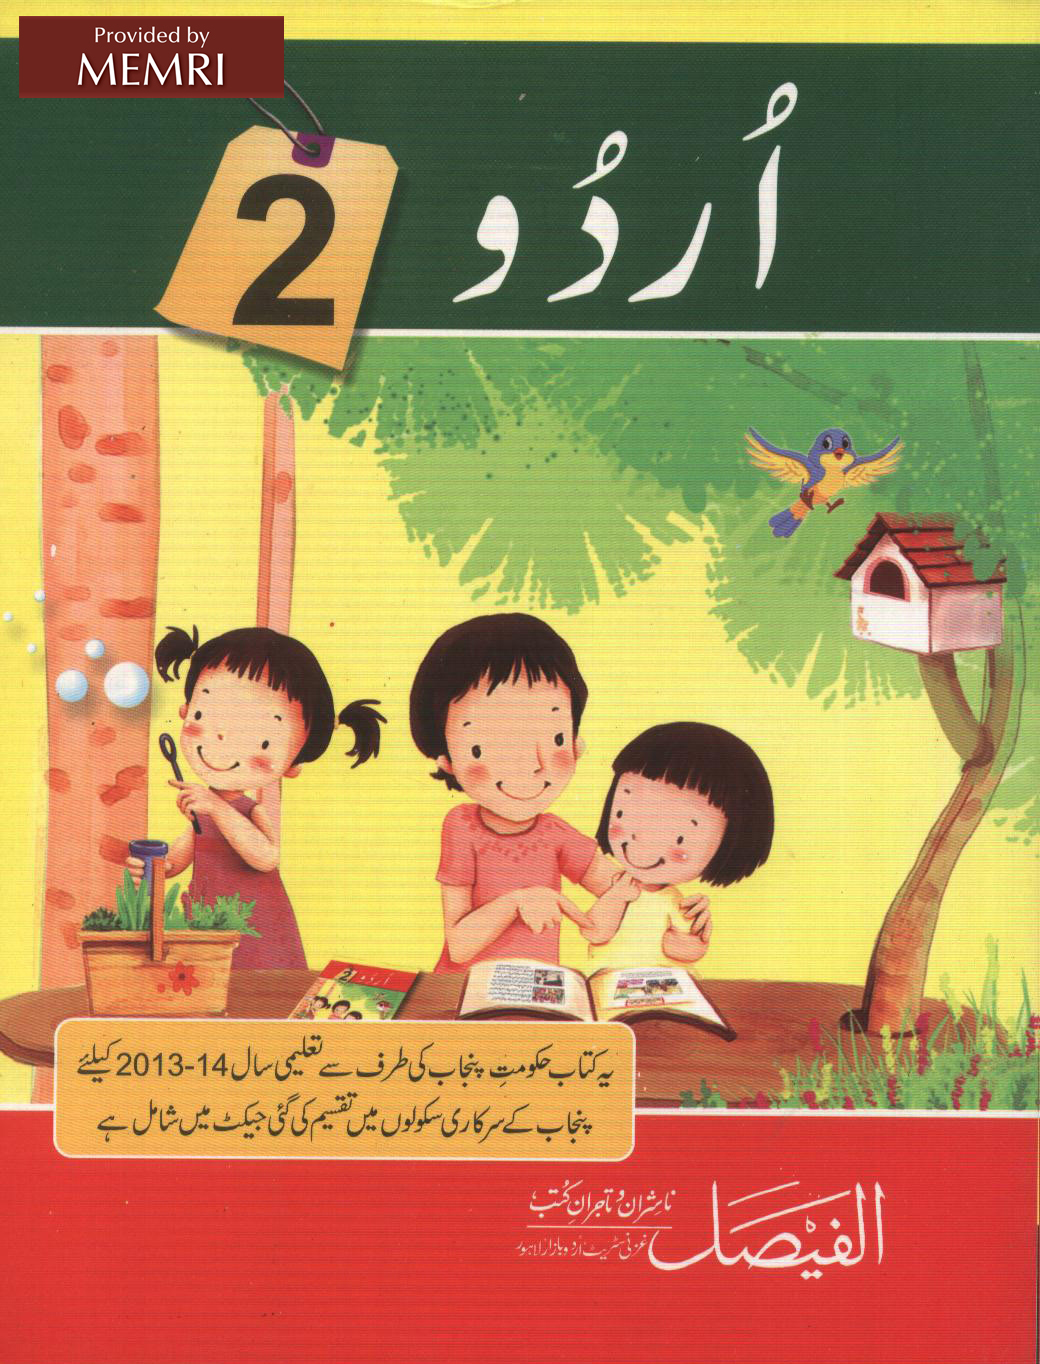 Textbooks In Pakistani Government Schools Teaching Hate